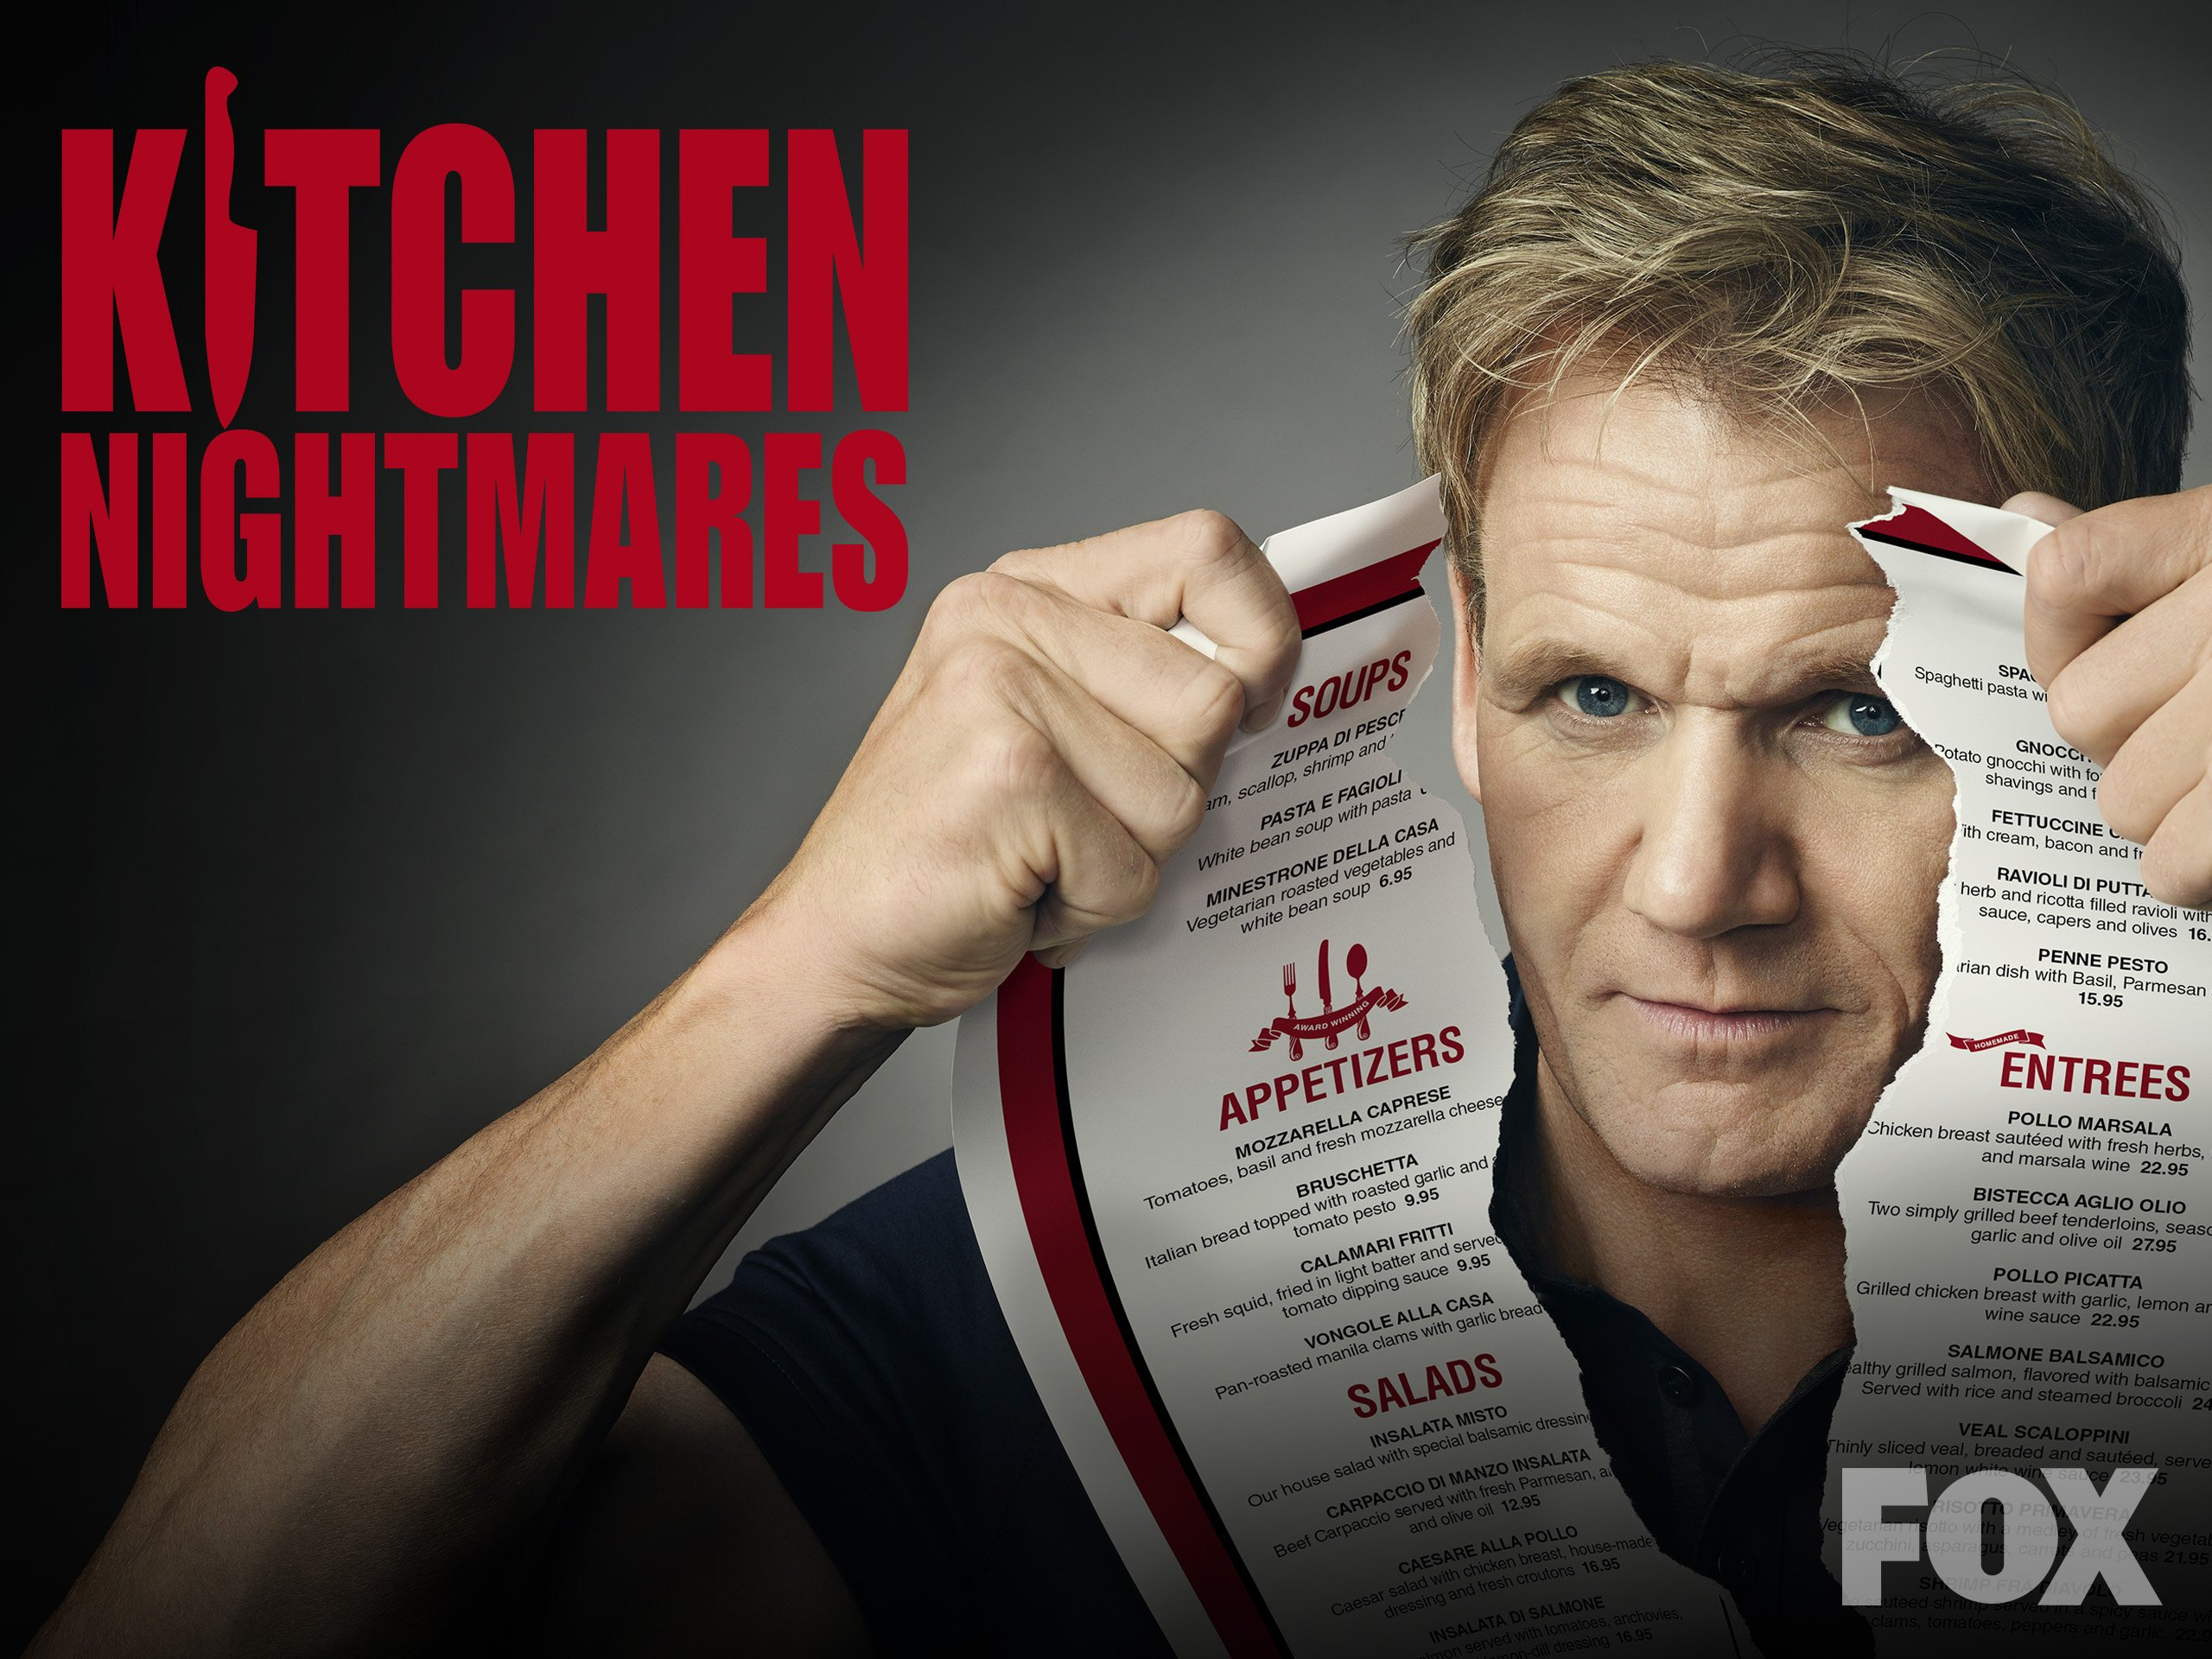 amazoncom kitchen nightmares season 7 amazon digital services llc - Kitchen Nightmares Season 8